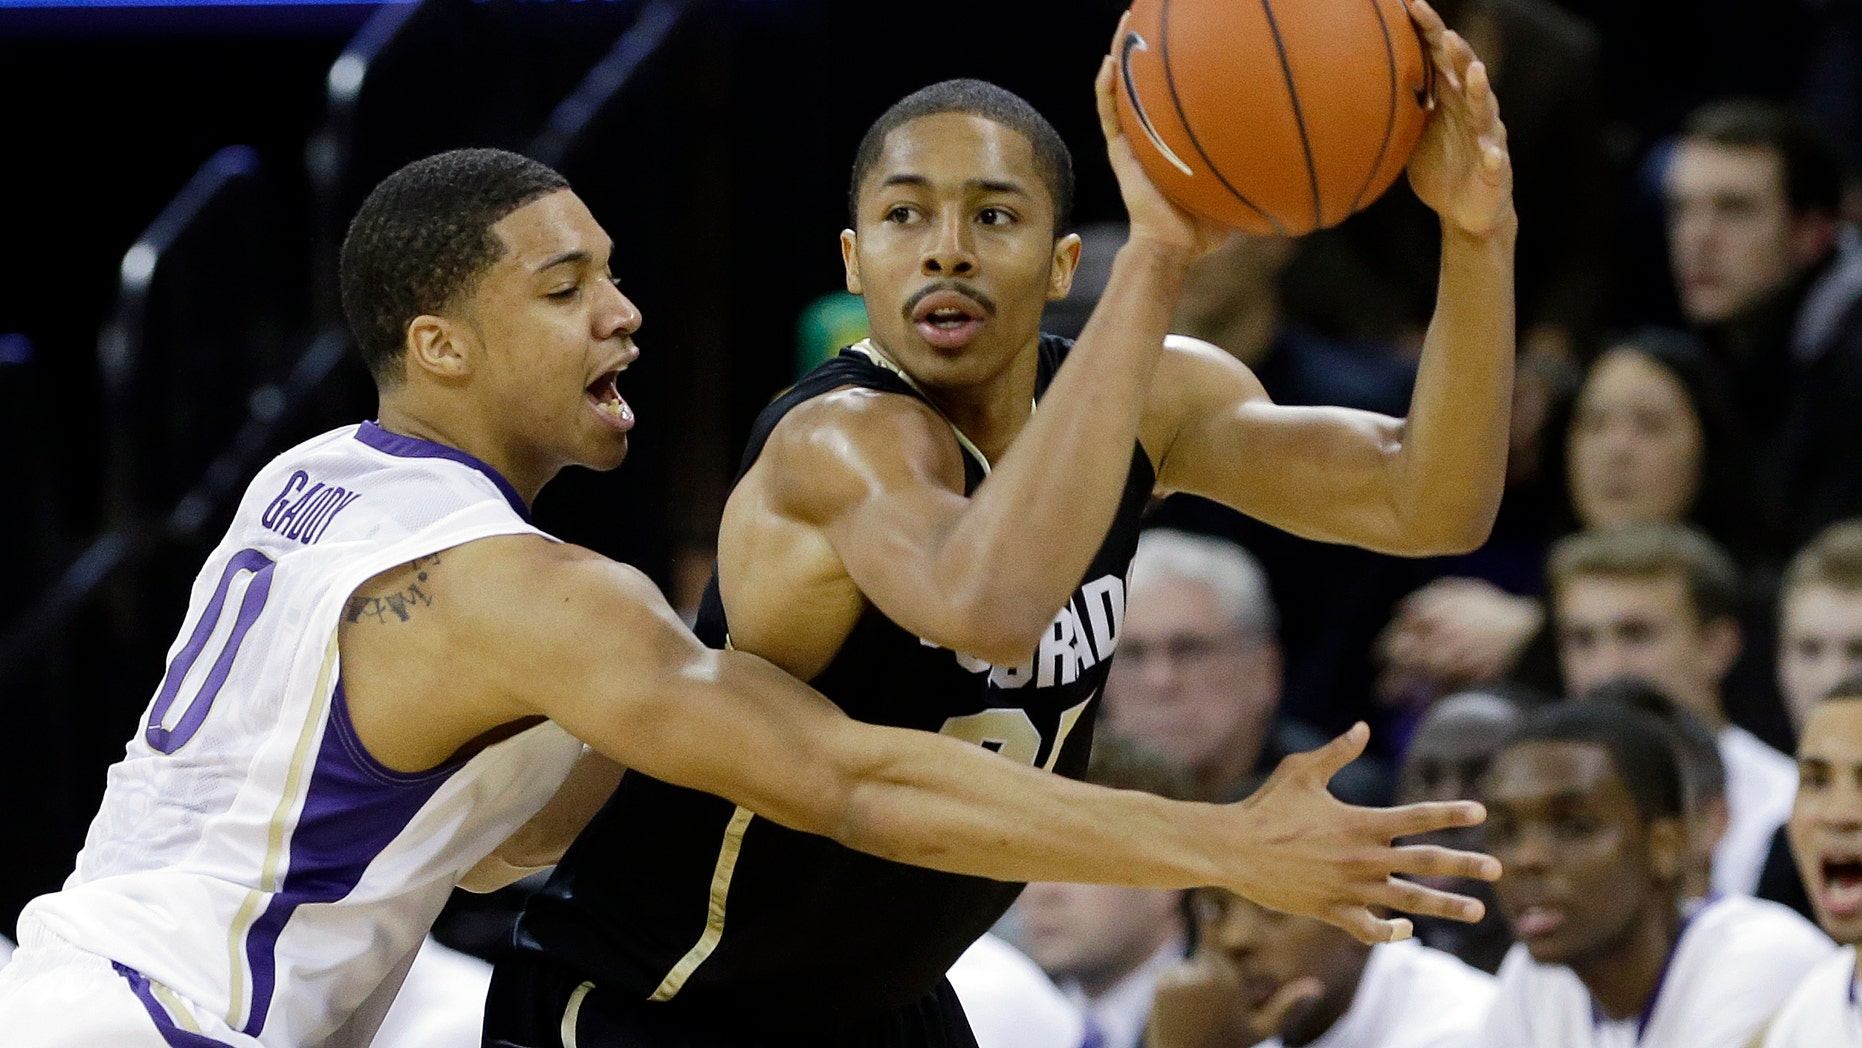 Colorado's Spencer Dinwiddie, right, is defended by Washington's Abdul Gaddy in the first half of an NCAA college basketball game Wednesday, Jan. 16, 2013, in Seattle. (AP Photo/Elaine Thompson)